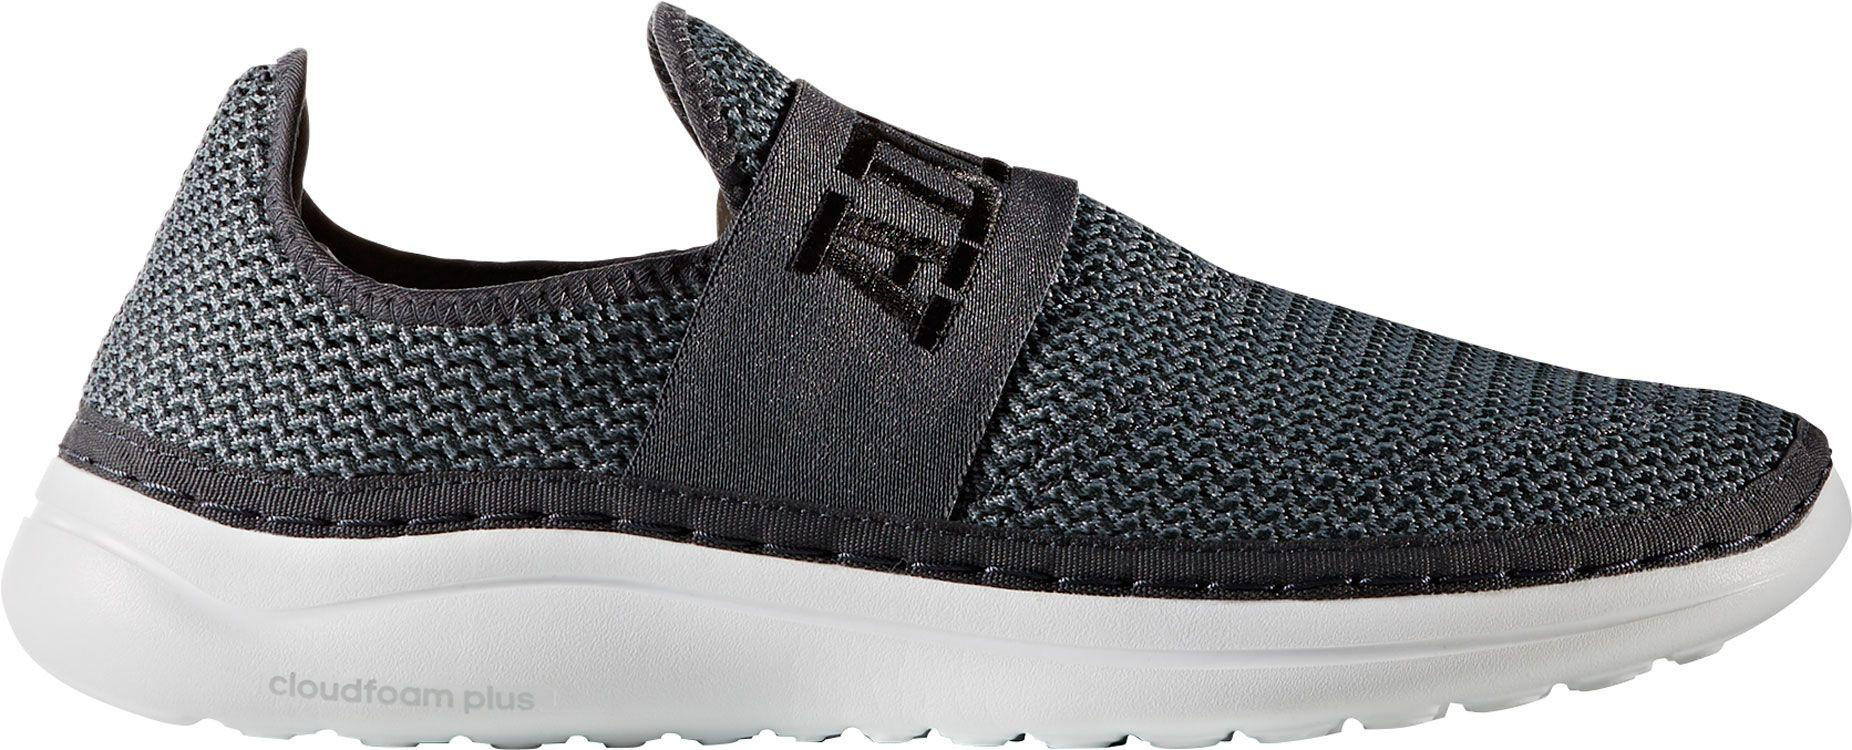 f38433345 Lyst - adidas Cloudfoam Plus Zen Recovery Shoes in Black for Men